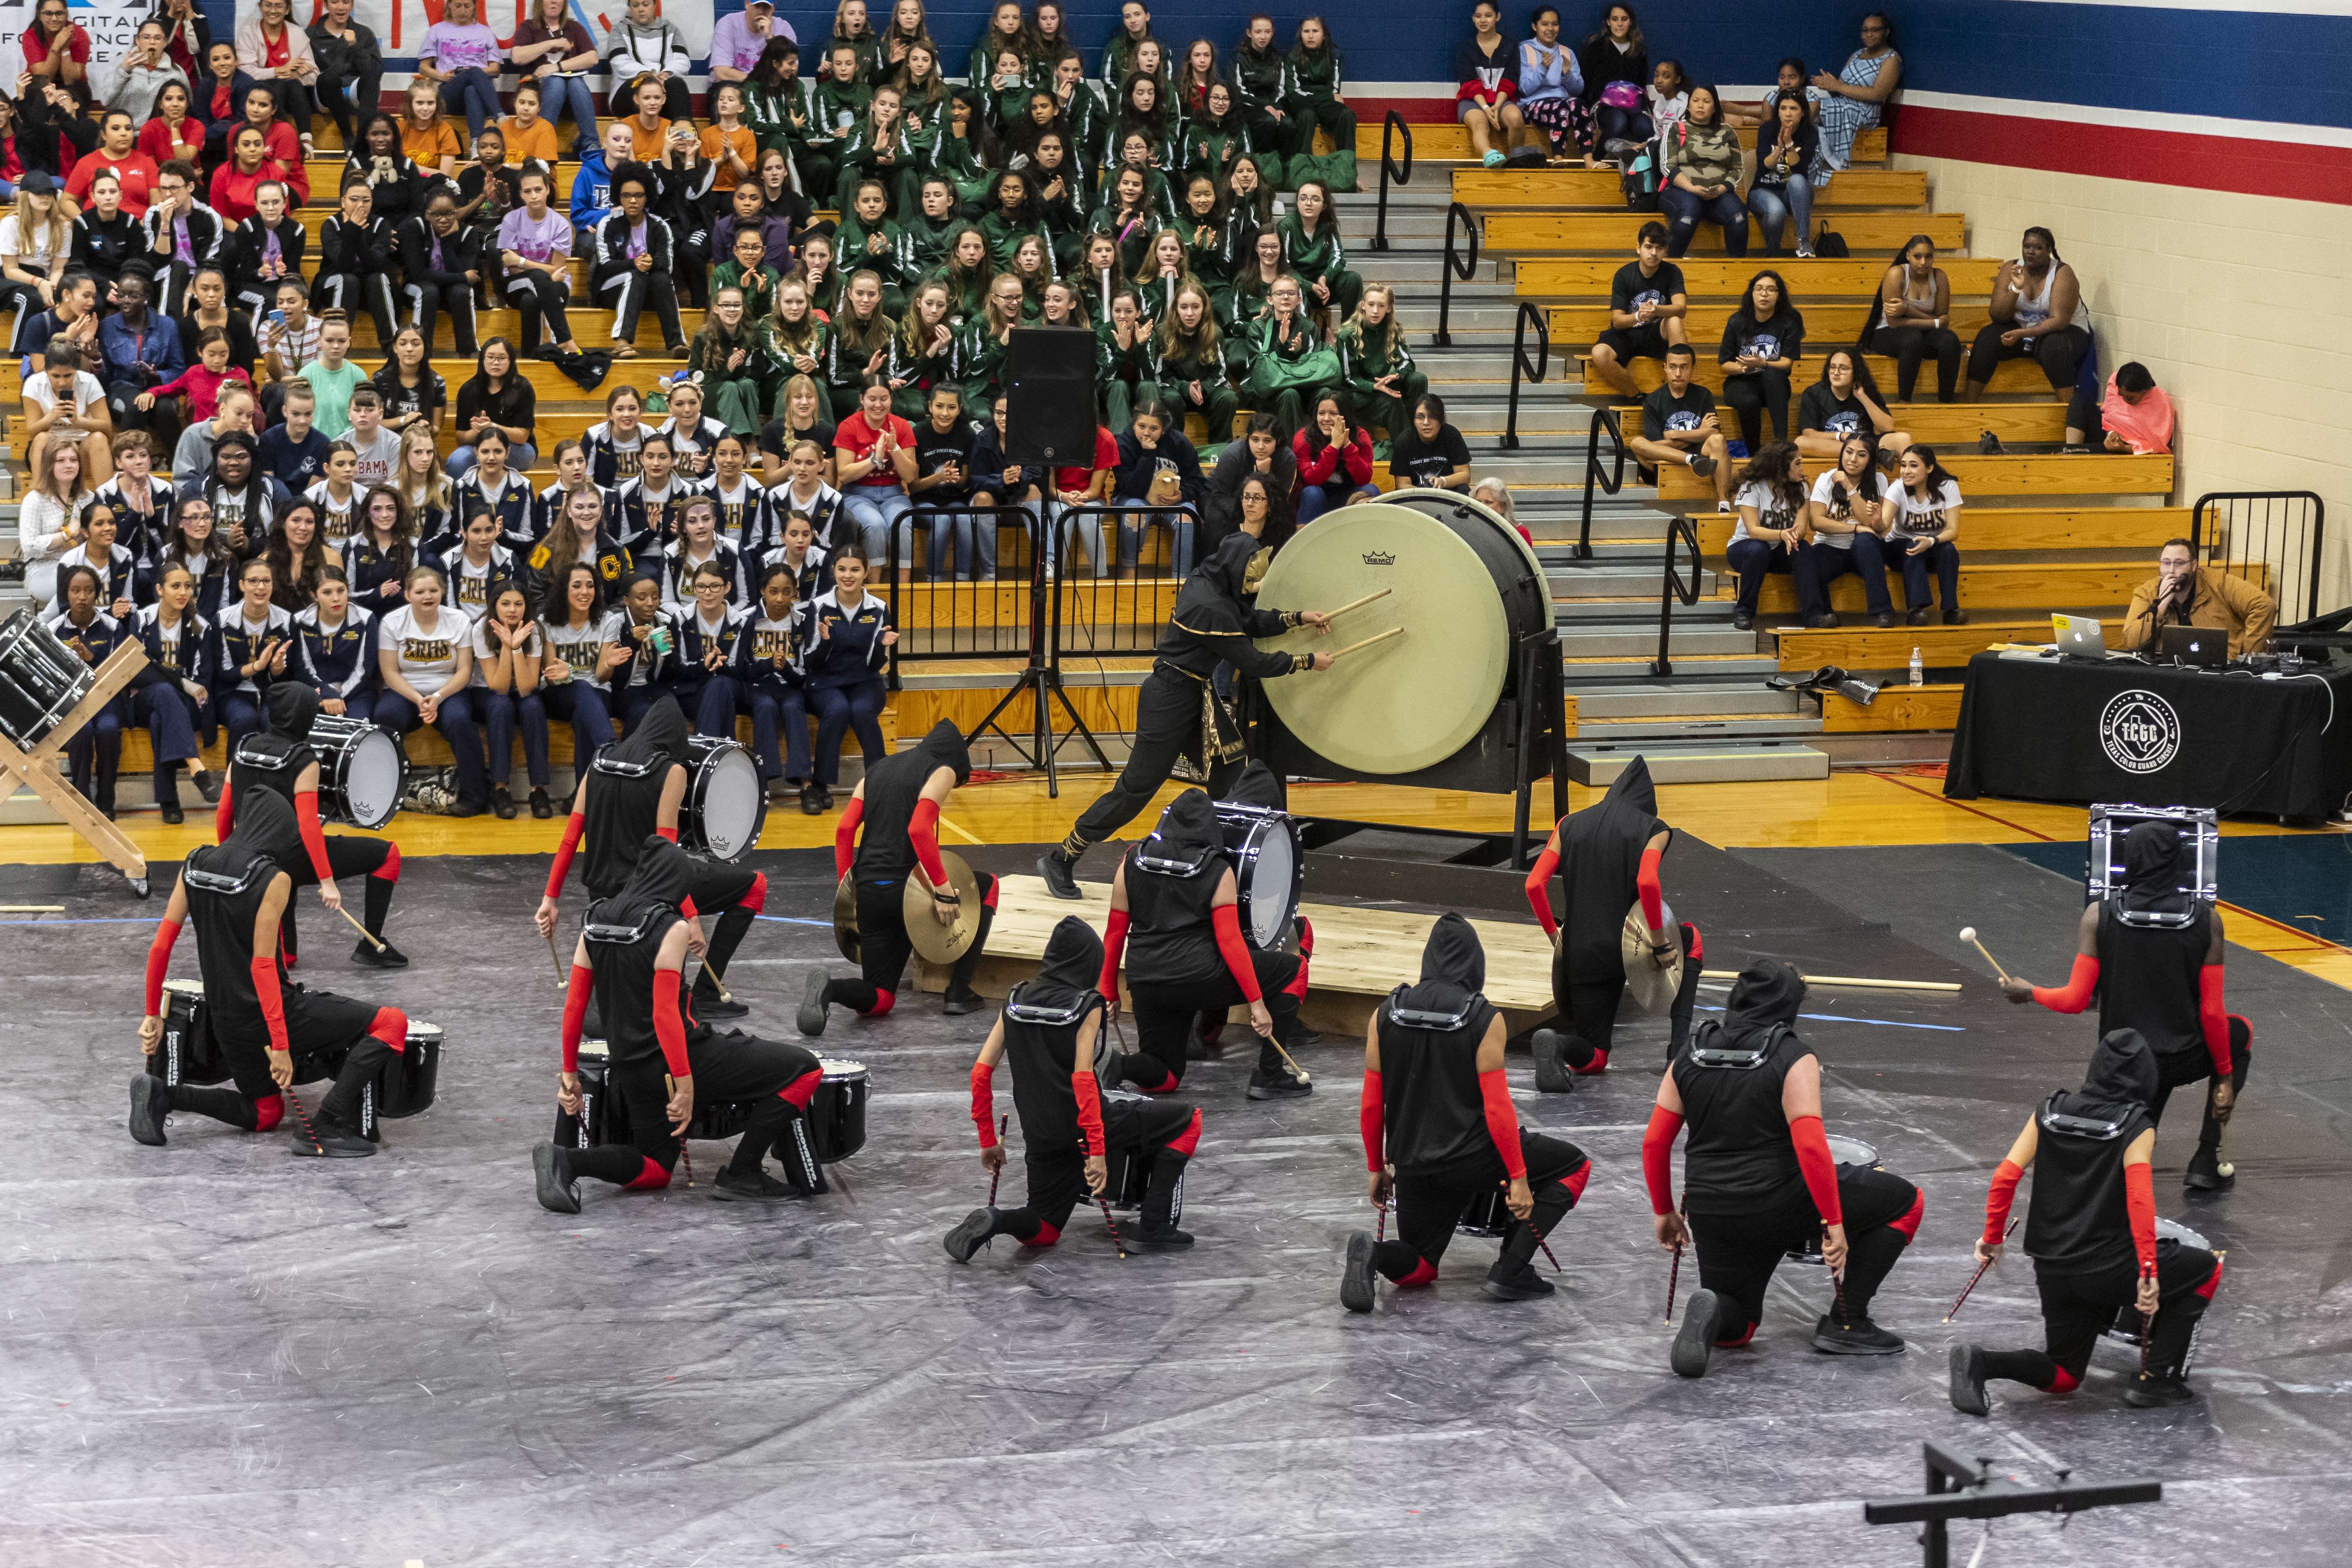 Copy of 20200222 Indoor Percussion-1885.